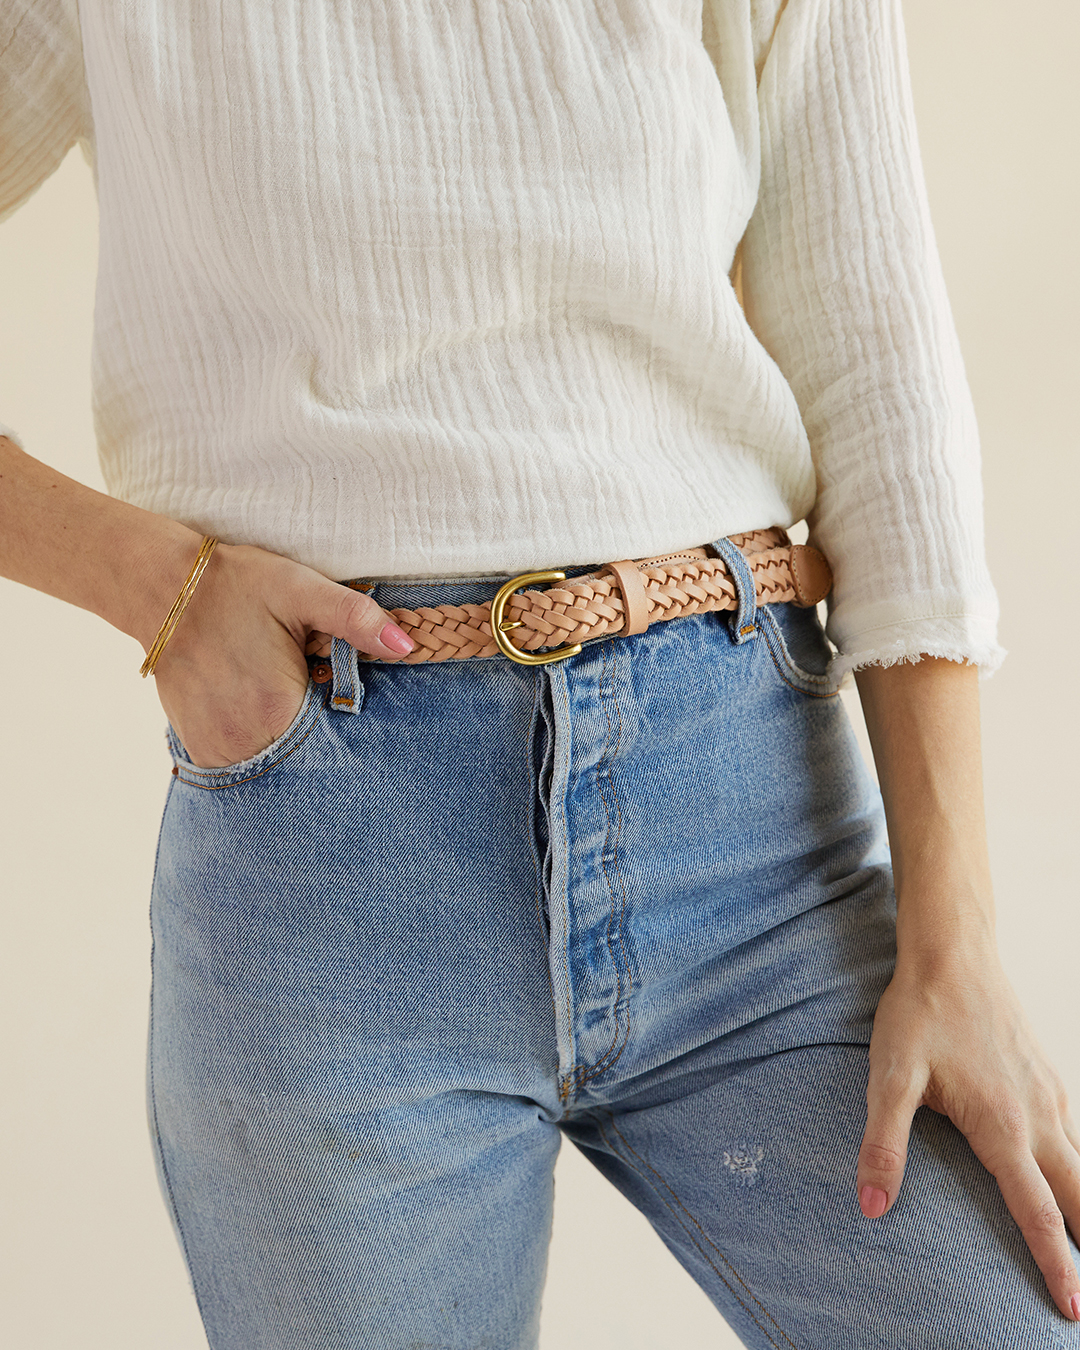 Braided Leather Belt - Nisolo | Ethically made | $48A closet staple, you can't go wrong with Nisolo's high quality leather belts and shoes!